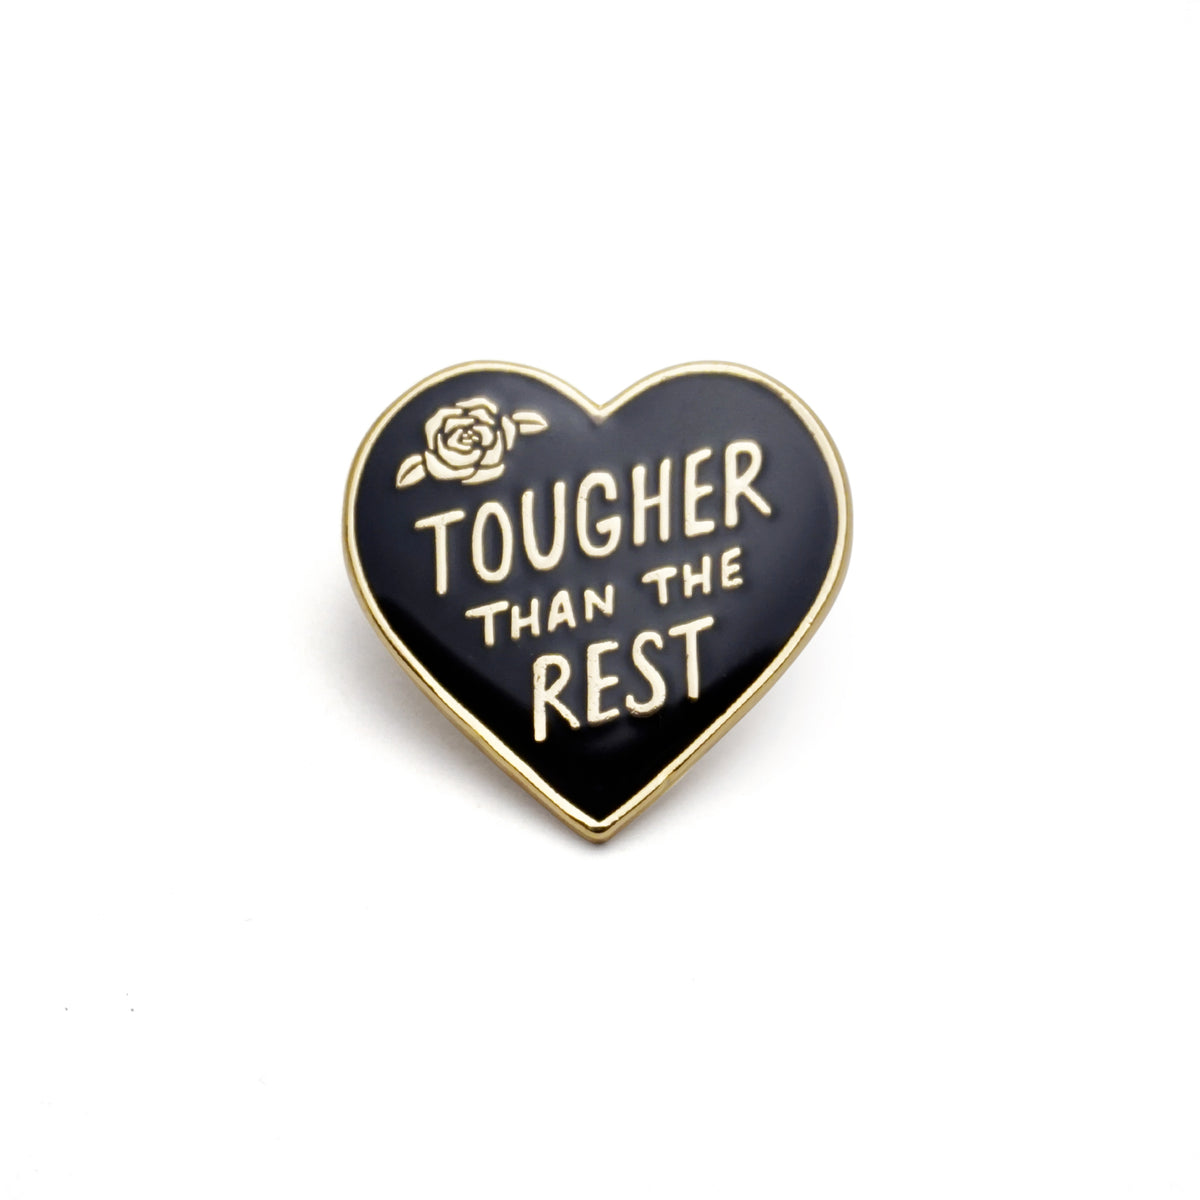 Tougher Than the Rest Enamel Pin